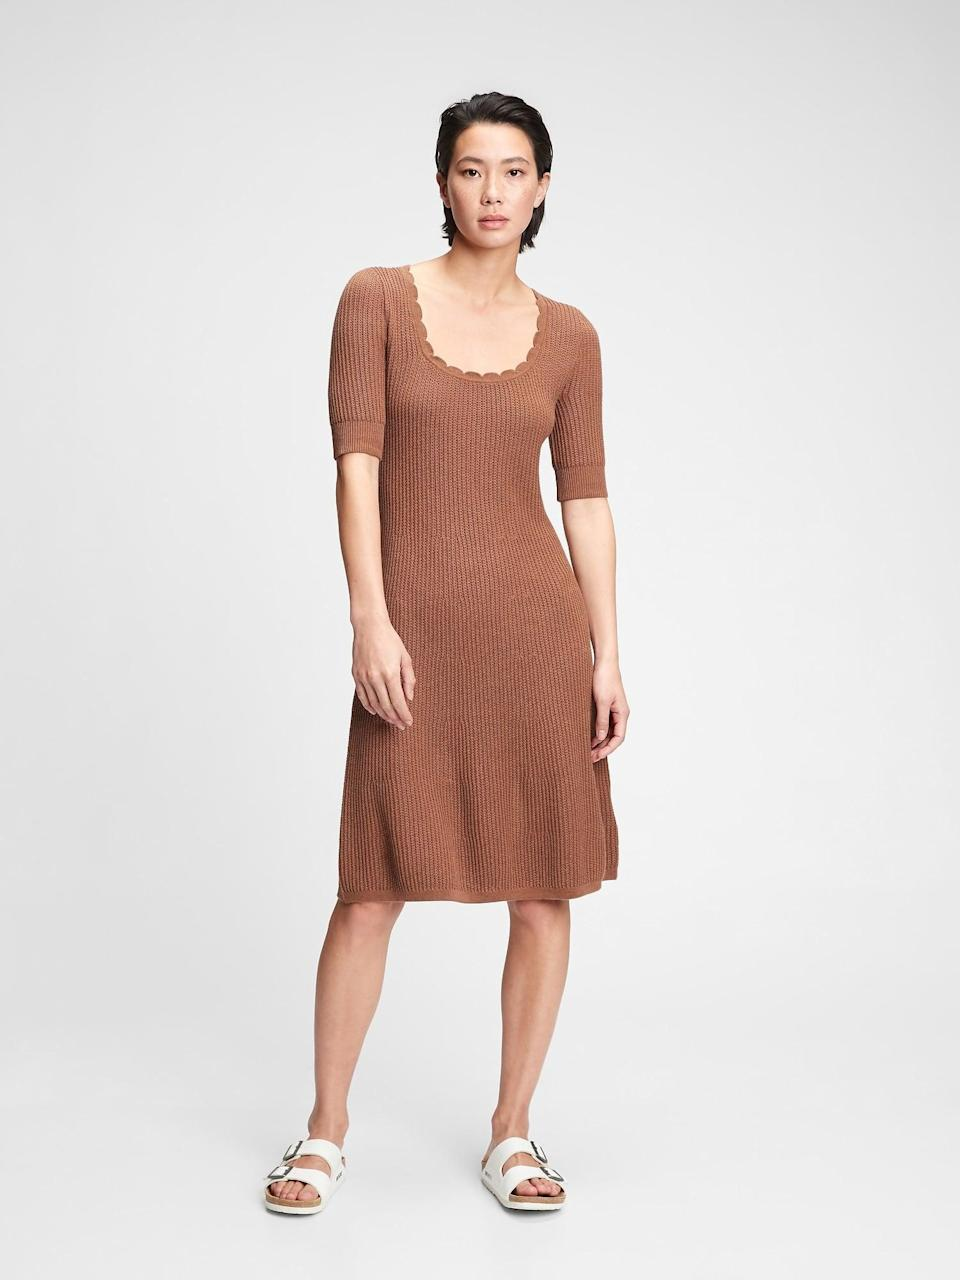 <p>This <span>Gap Fit and Flare Sweater Dress</span> ($55, originally $70) looks stylish and comfortable. Pair it with a denim jacket and your favorite pair of sneakers for weekend errands.</p>